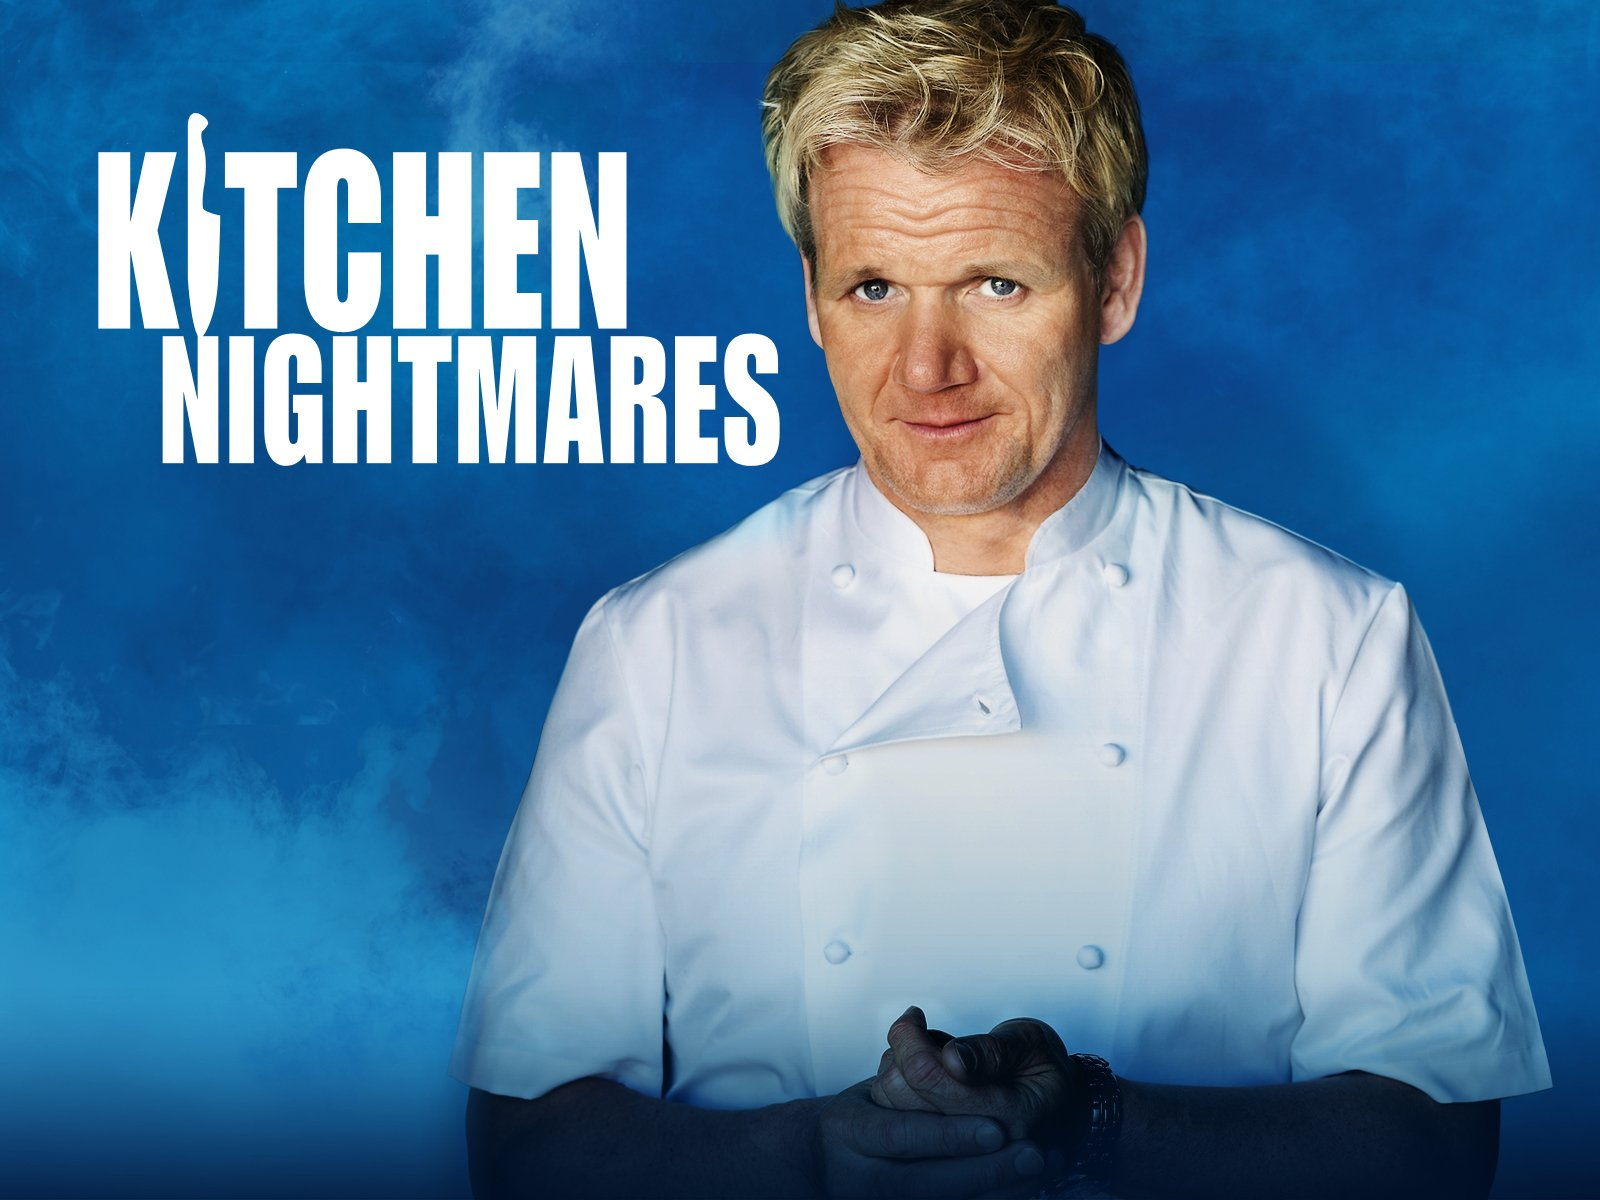 Amazon.com: Kitchen Nightmares Season 3: Amazon Digital Services LLC